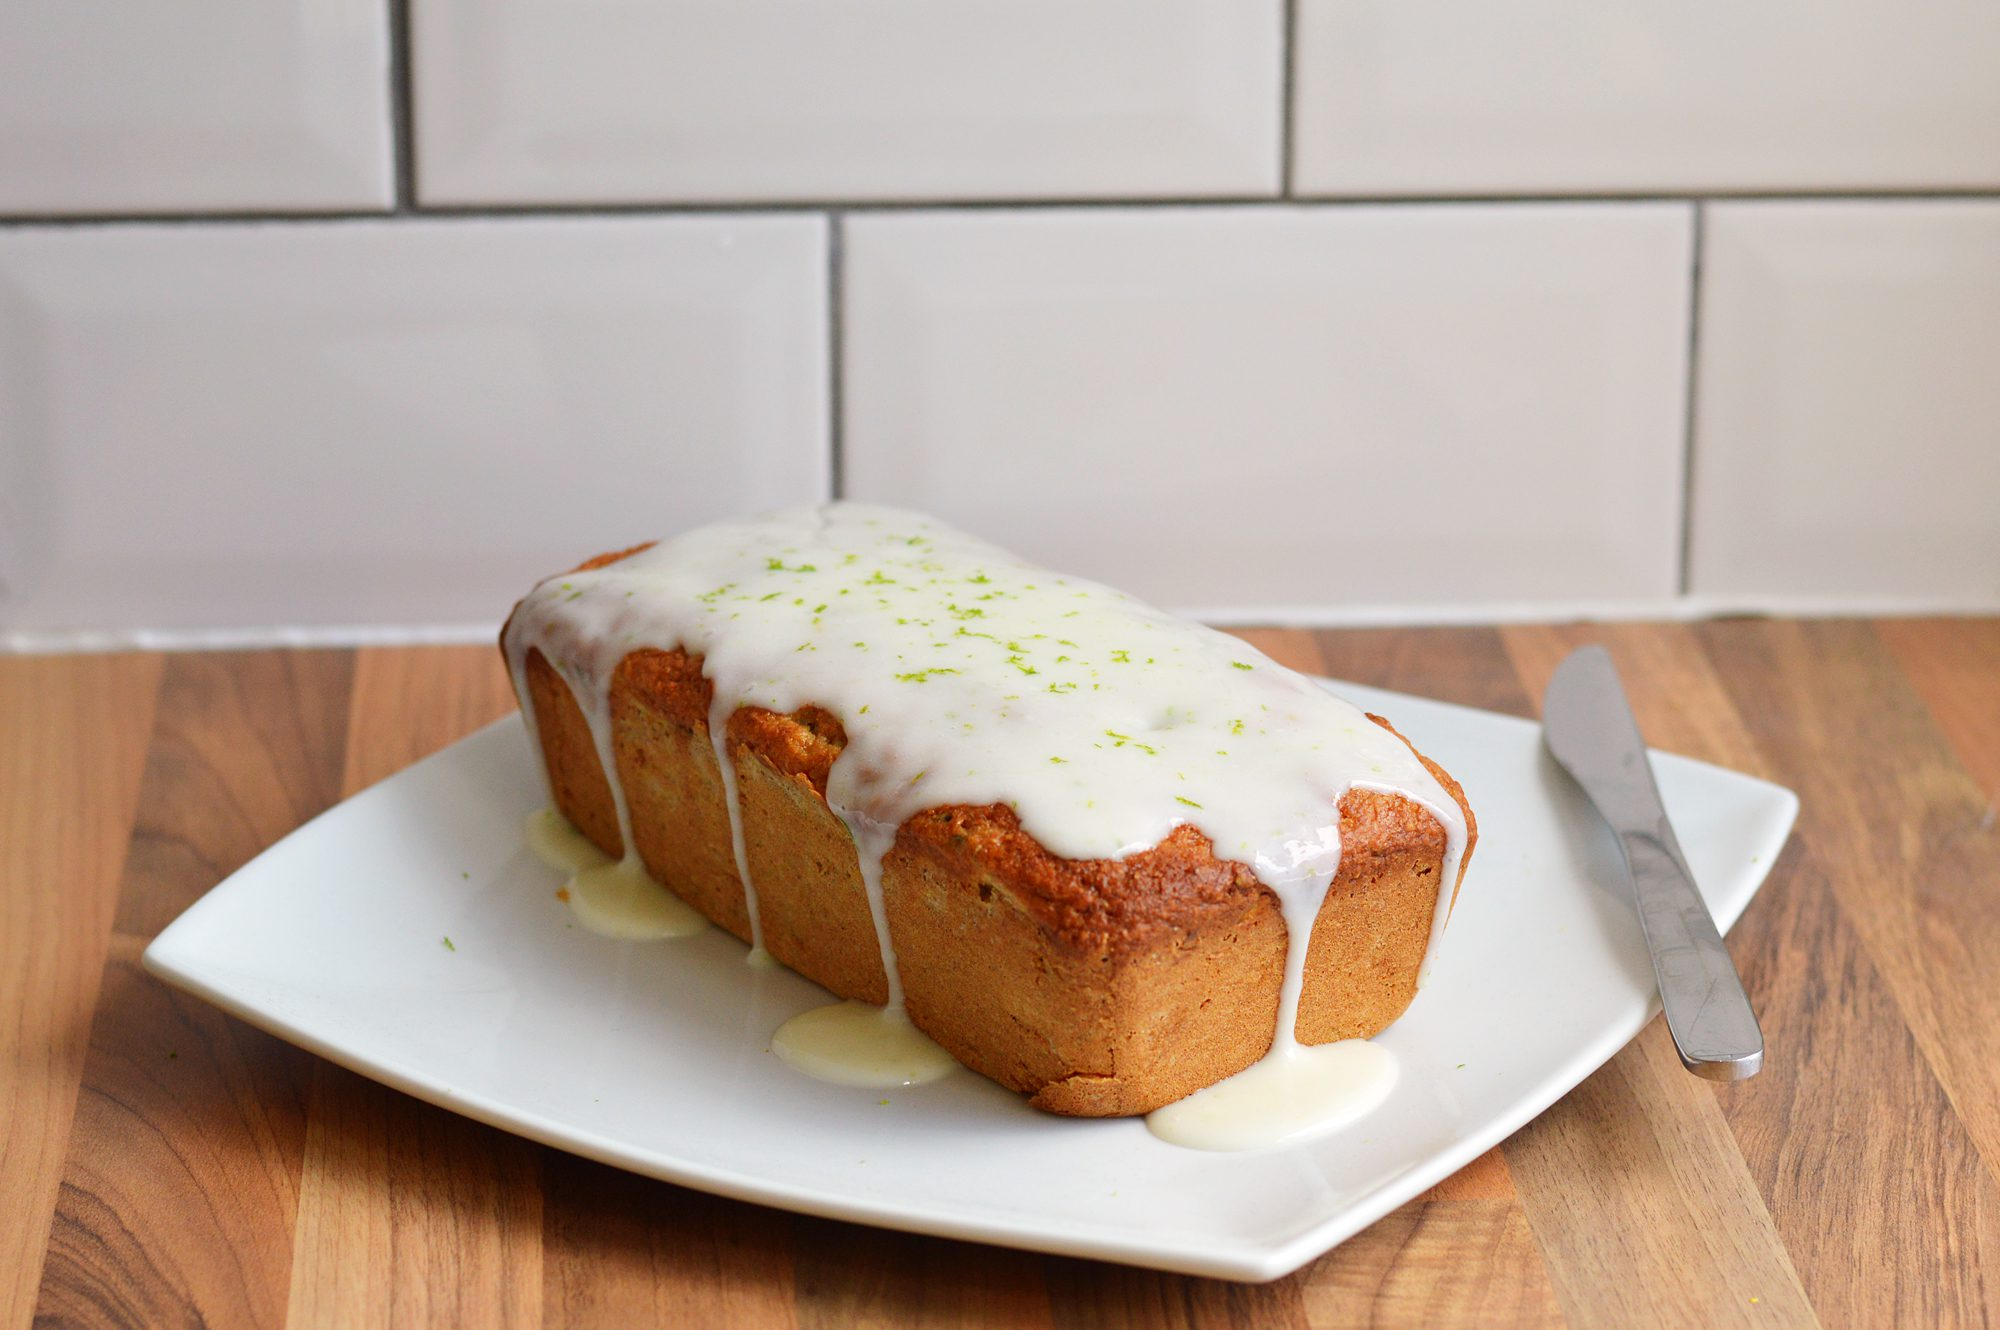 Courgette, Lime & Pistachio Loaf Cake